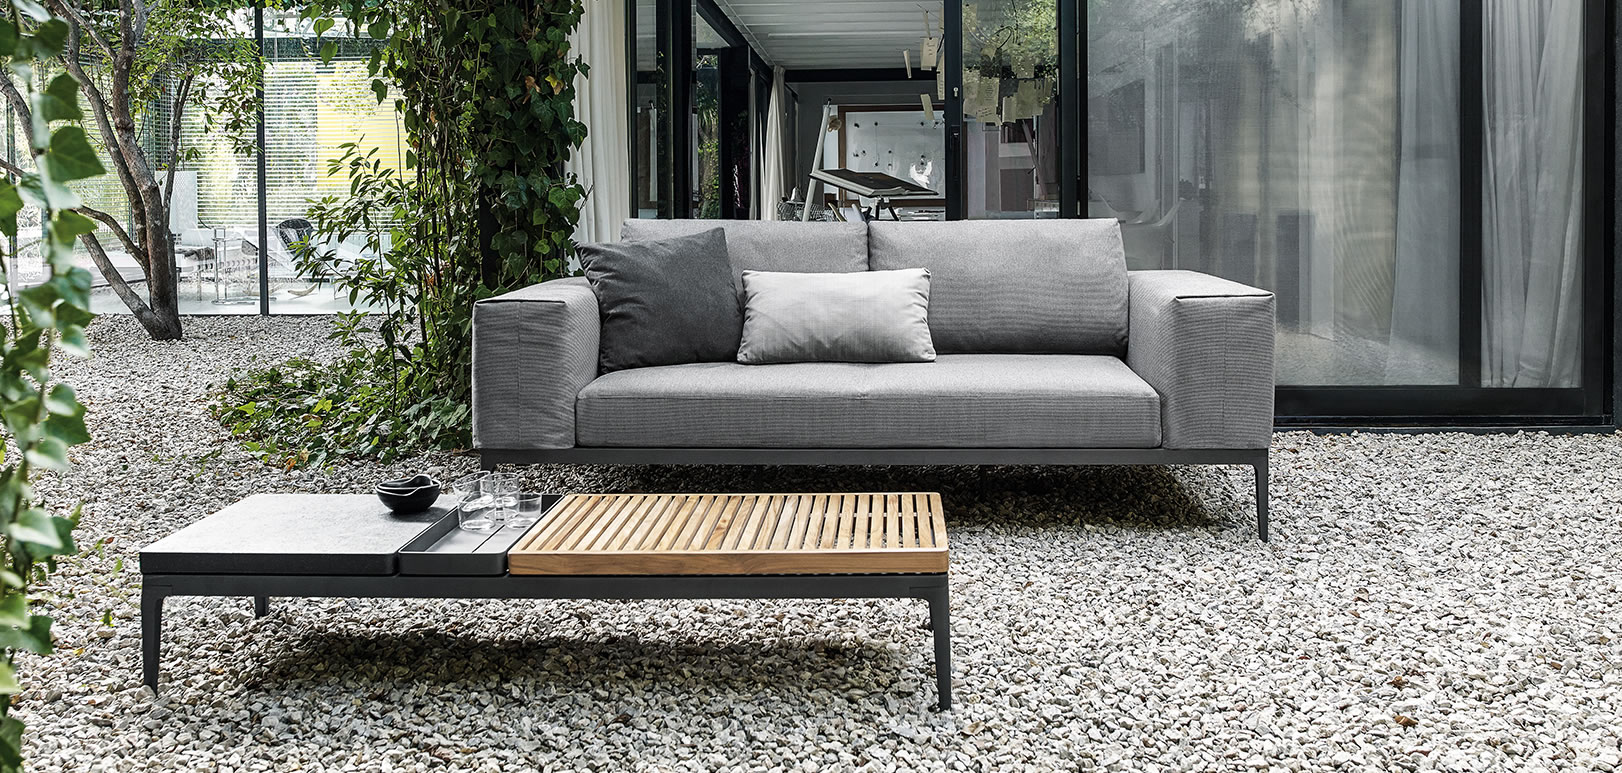 grid lounge gloster grid lounge gloster sonnenliegen outdoor grid lounge gloster sofas. Black Bedroom Furniture Sets. Home Design Ideas